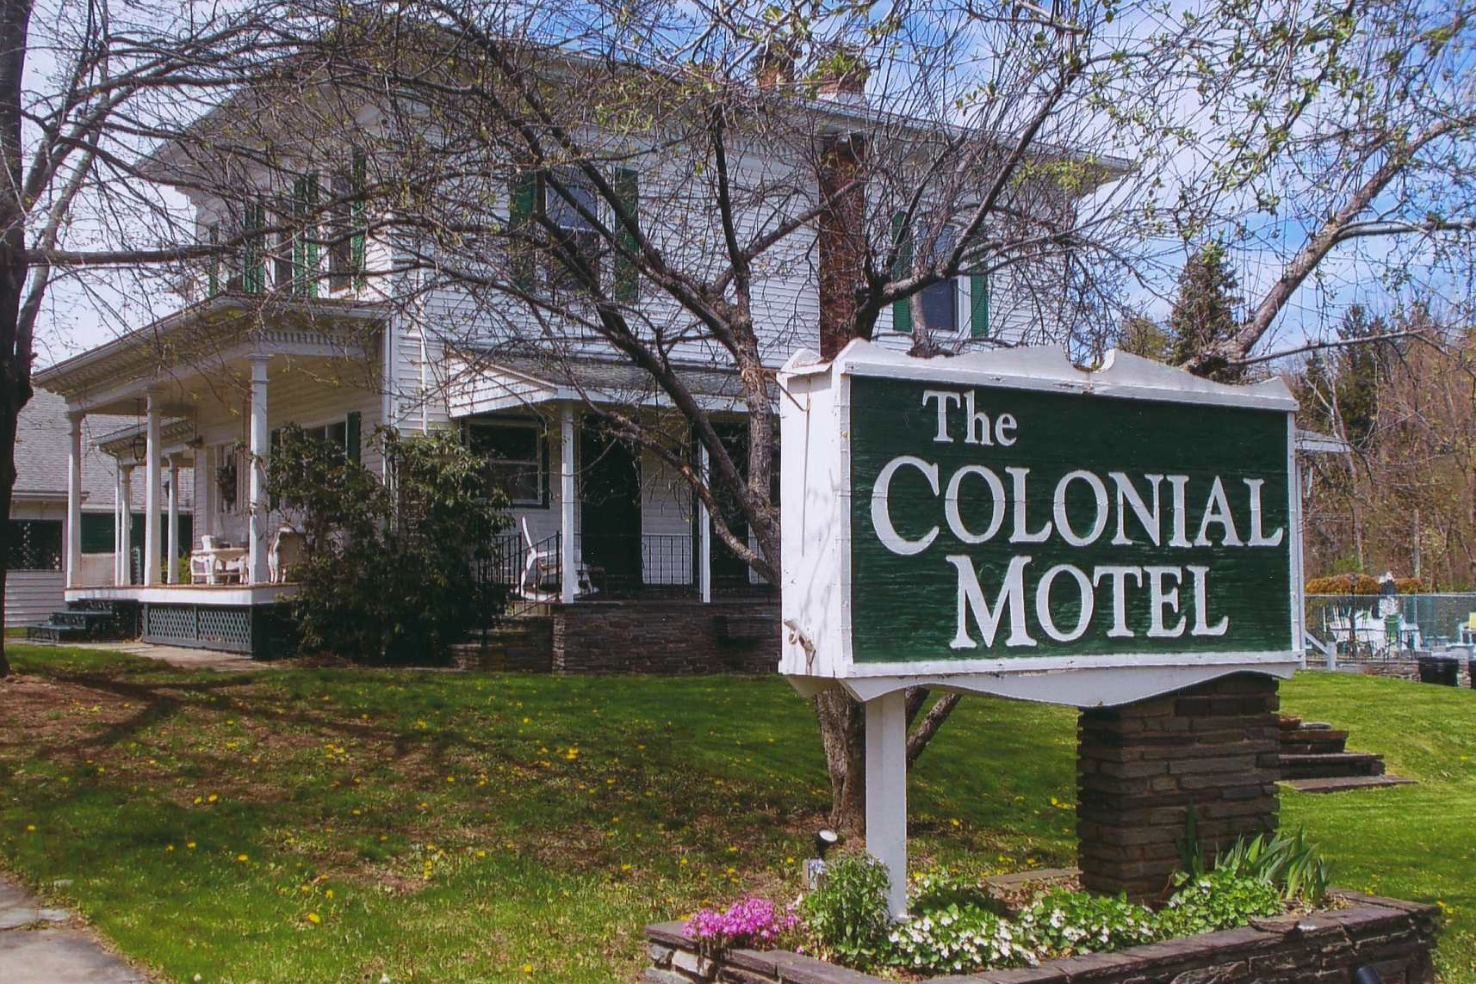 THE COLONIAL MOTEL  Pet-friendly  37283 State Highway 23 Grand Gorge, NY 12434 (607) 588-6122 info@colonialmotel.biz www.colonialmotel.biz  Click  here  to book room.  Distance: 25 miles / 30 minutes Capacity: 50 people